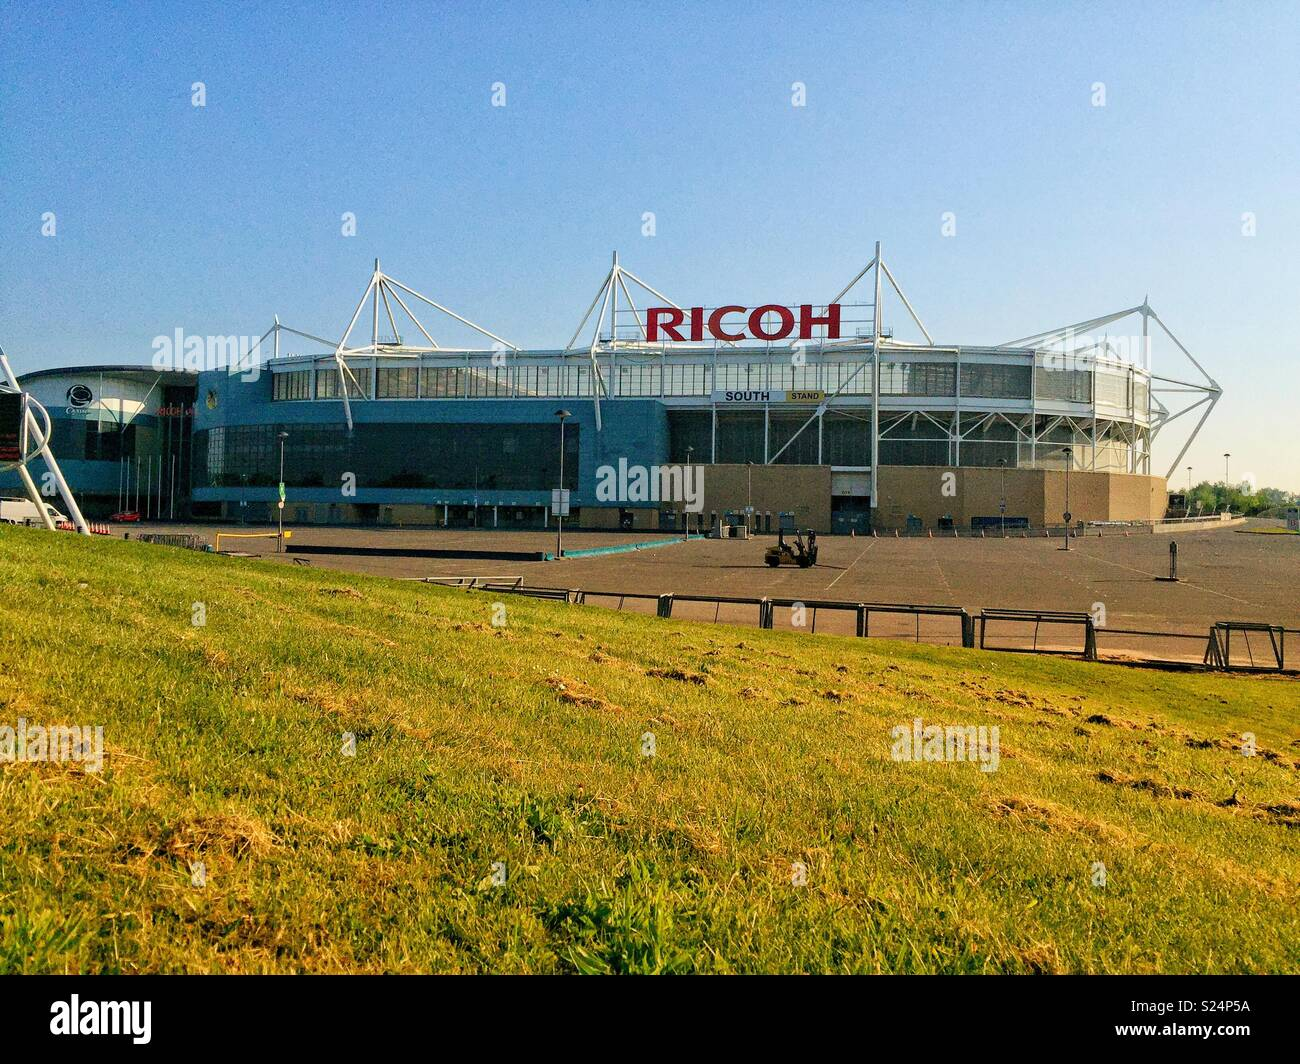 Ricoh Arena Coventry West Midlands home of Wasps RFC and Coventry City FC. - Stock Image